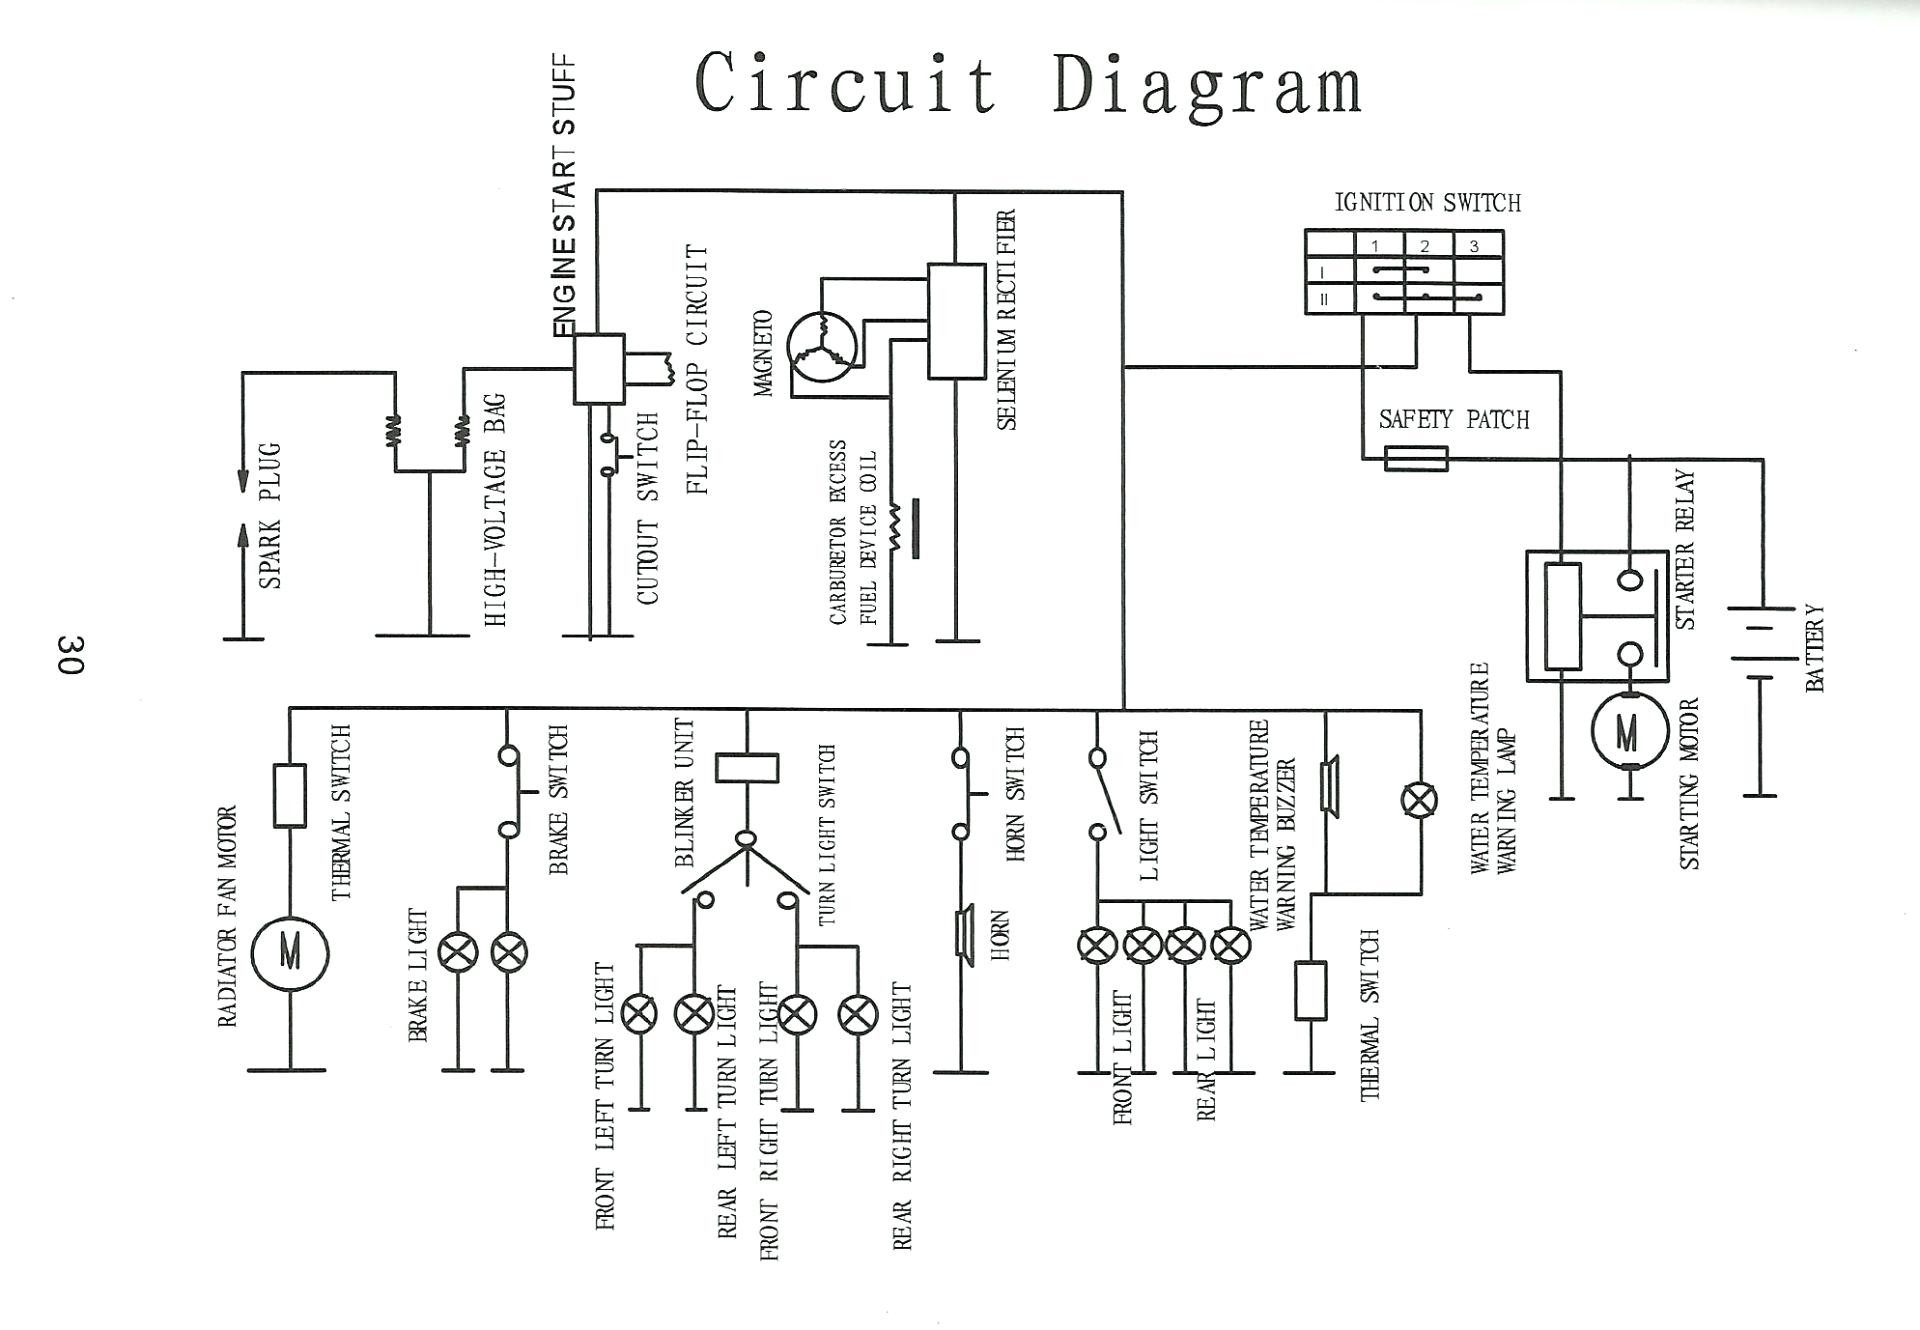 50cc scooter wiring diagram coil